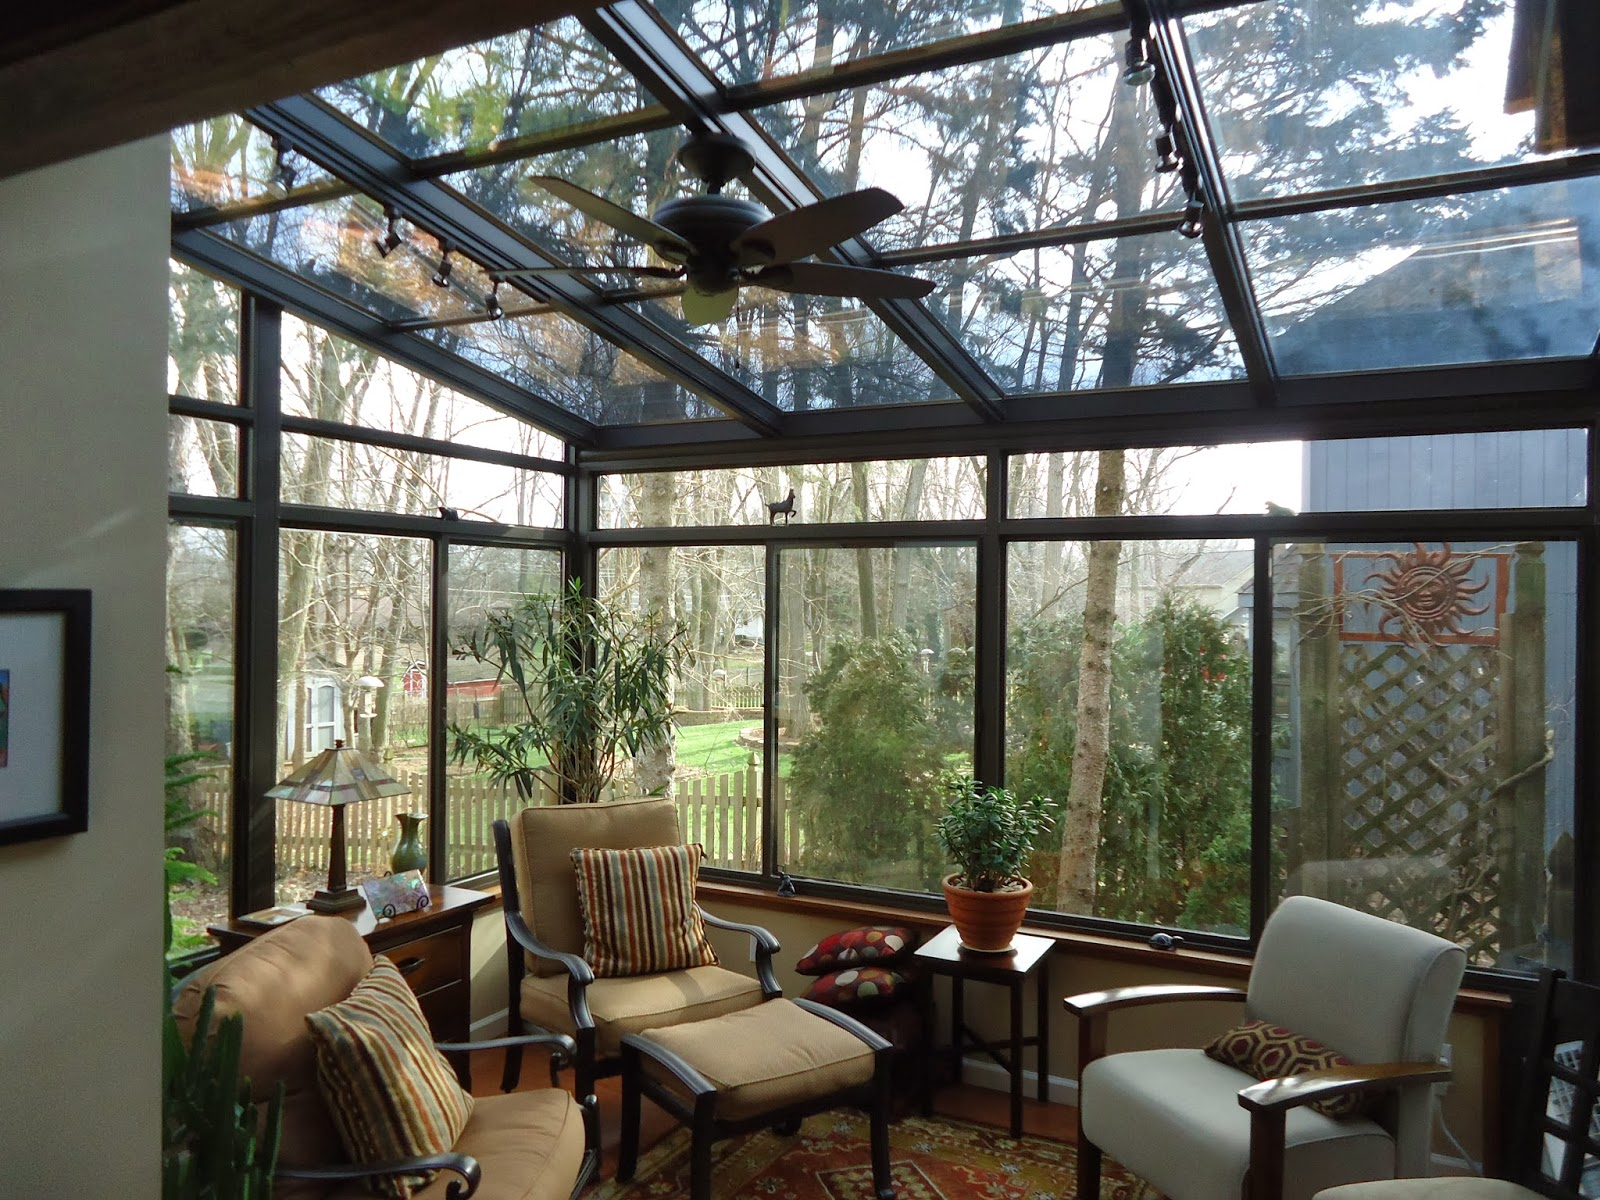 Four seasons sunrooms why choose a four seasons sunroom for Solarium room additions